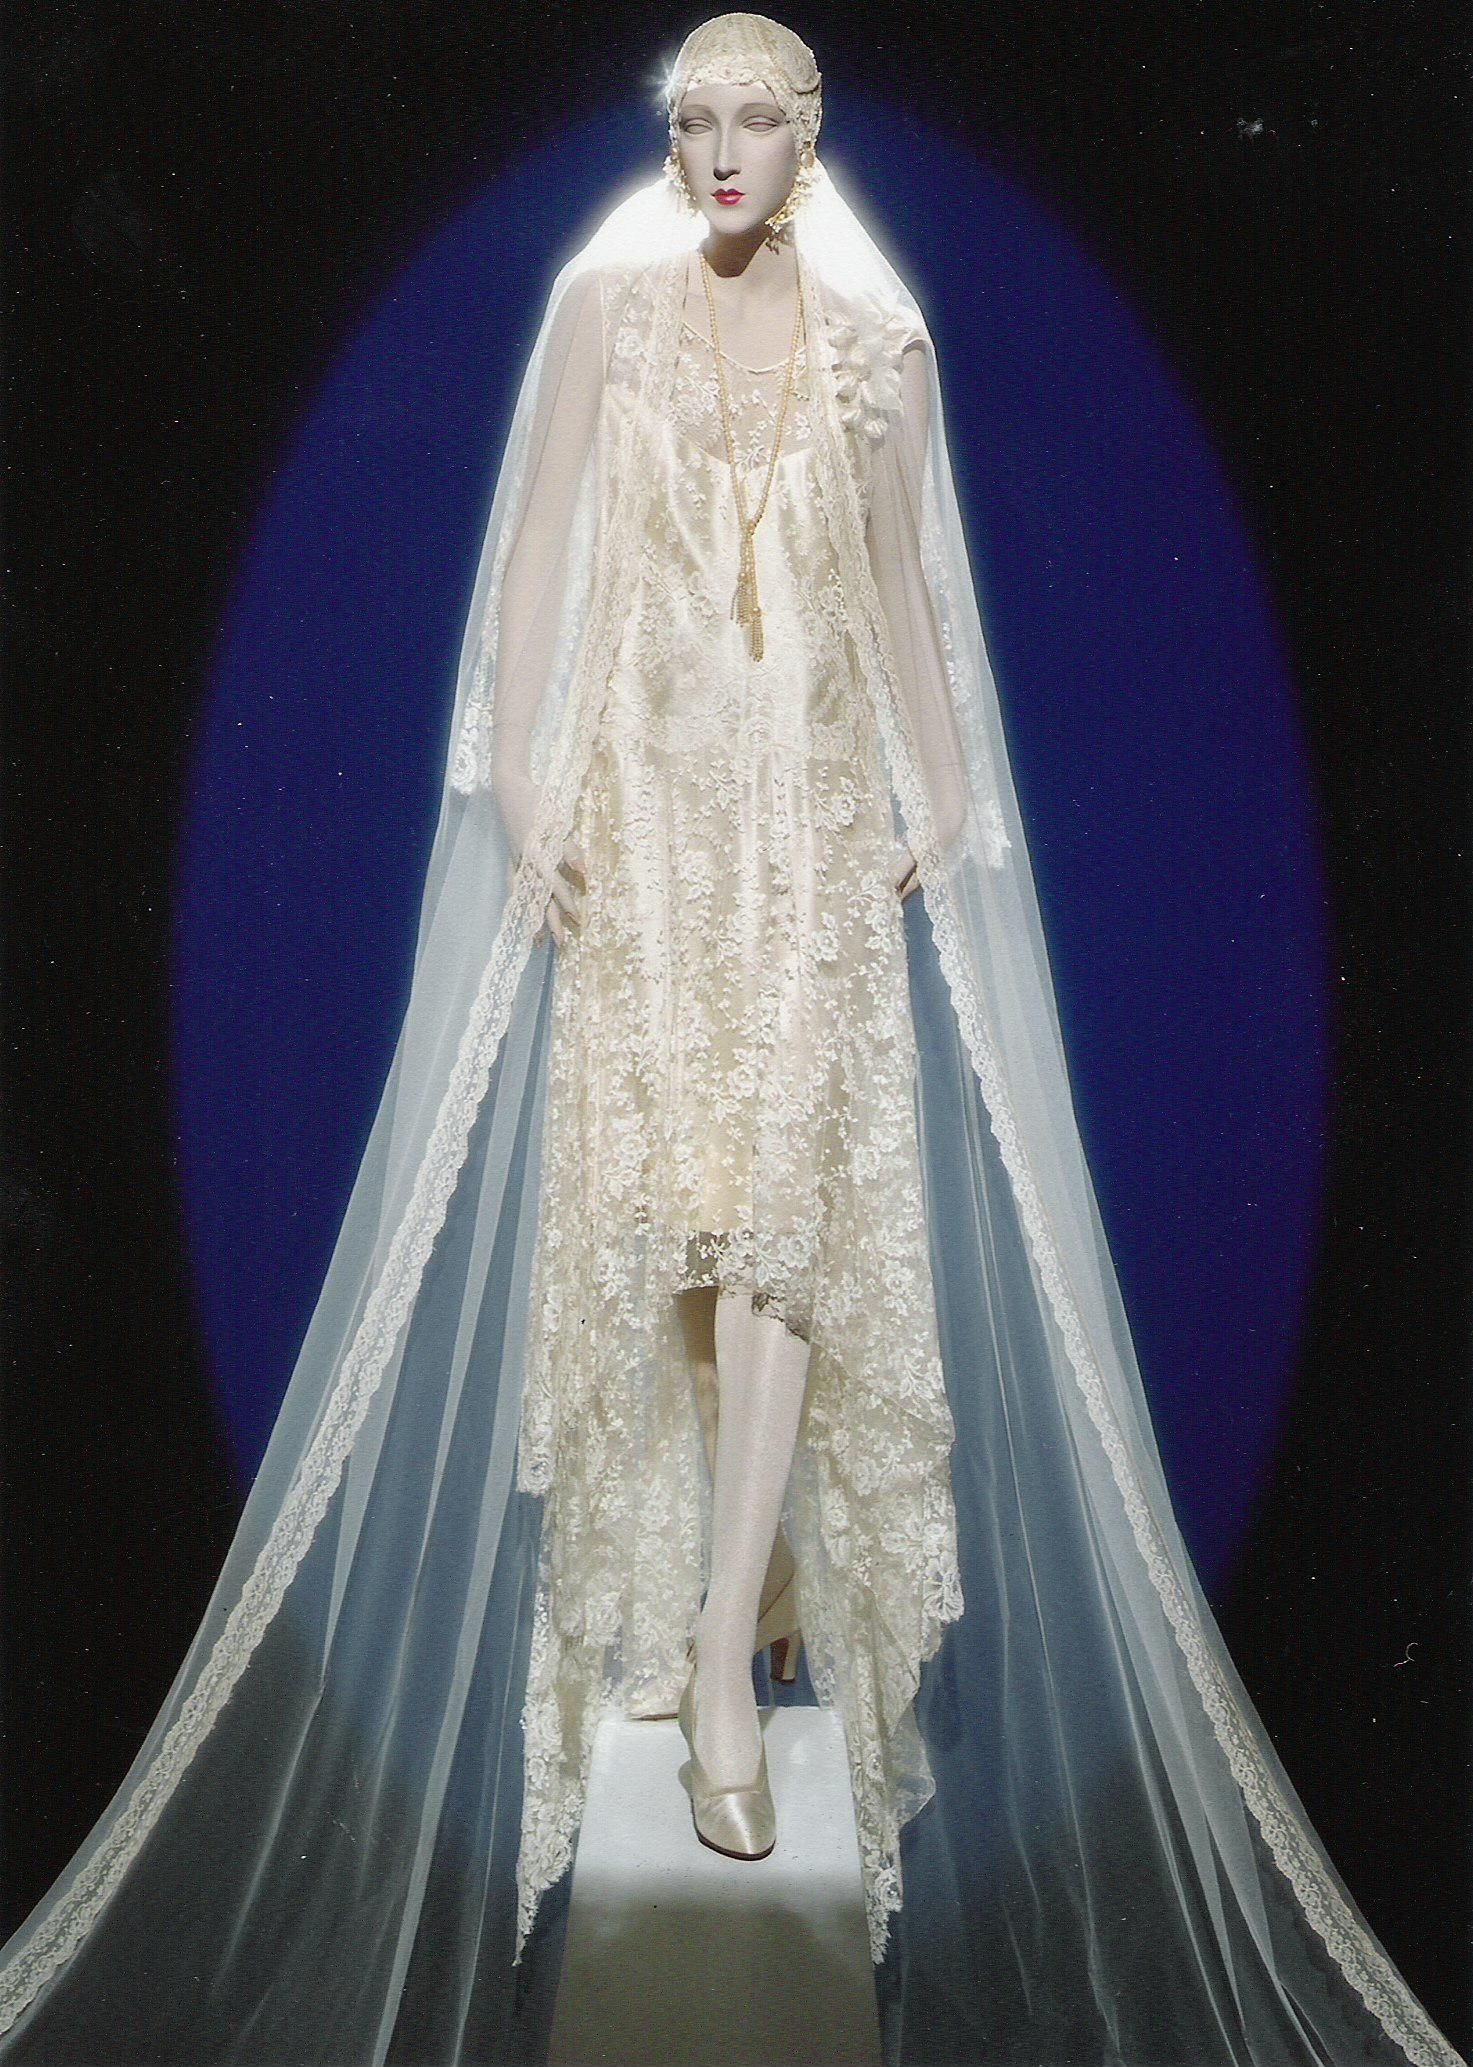 Wedding gown on form with a veil added gowns gowns gowns